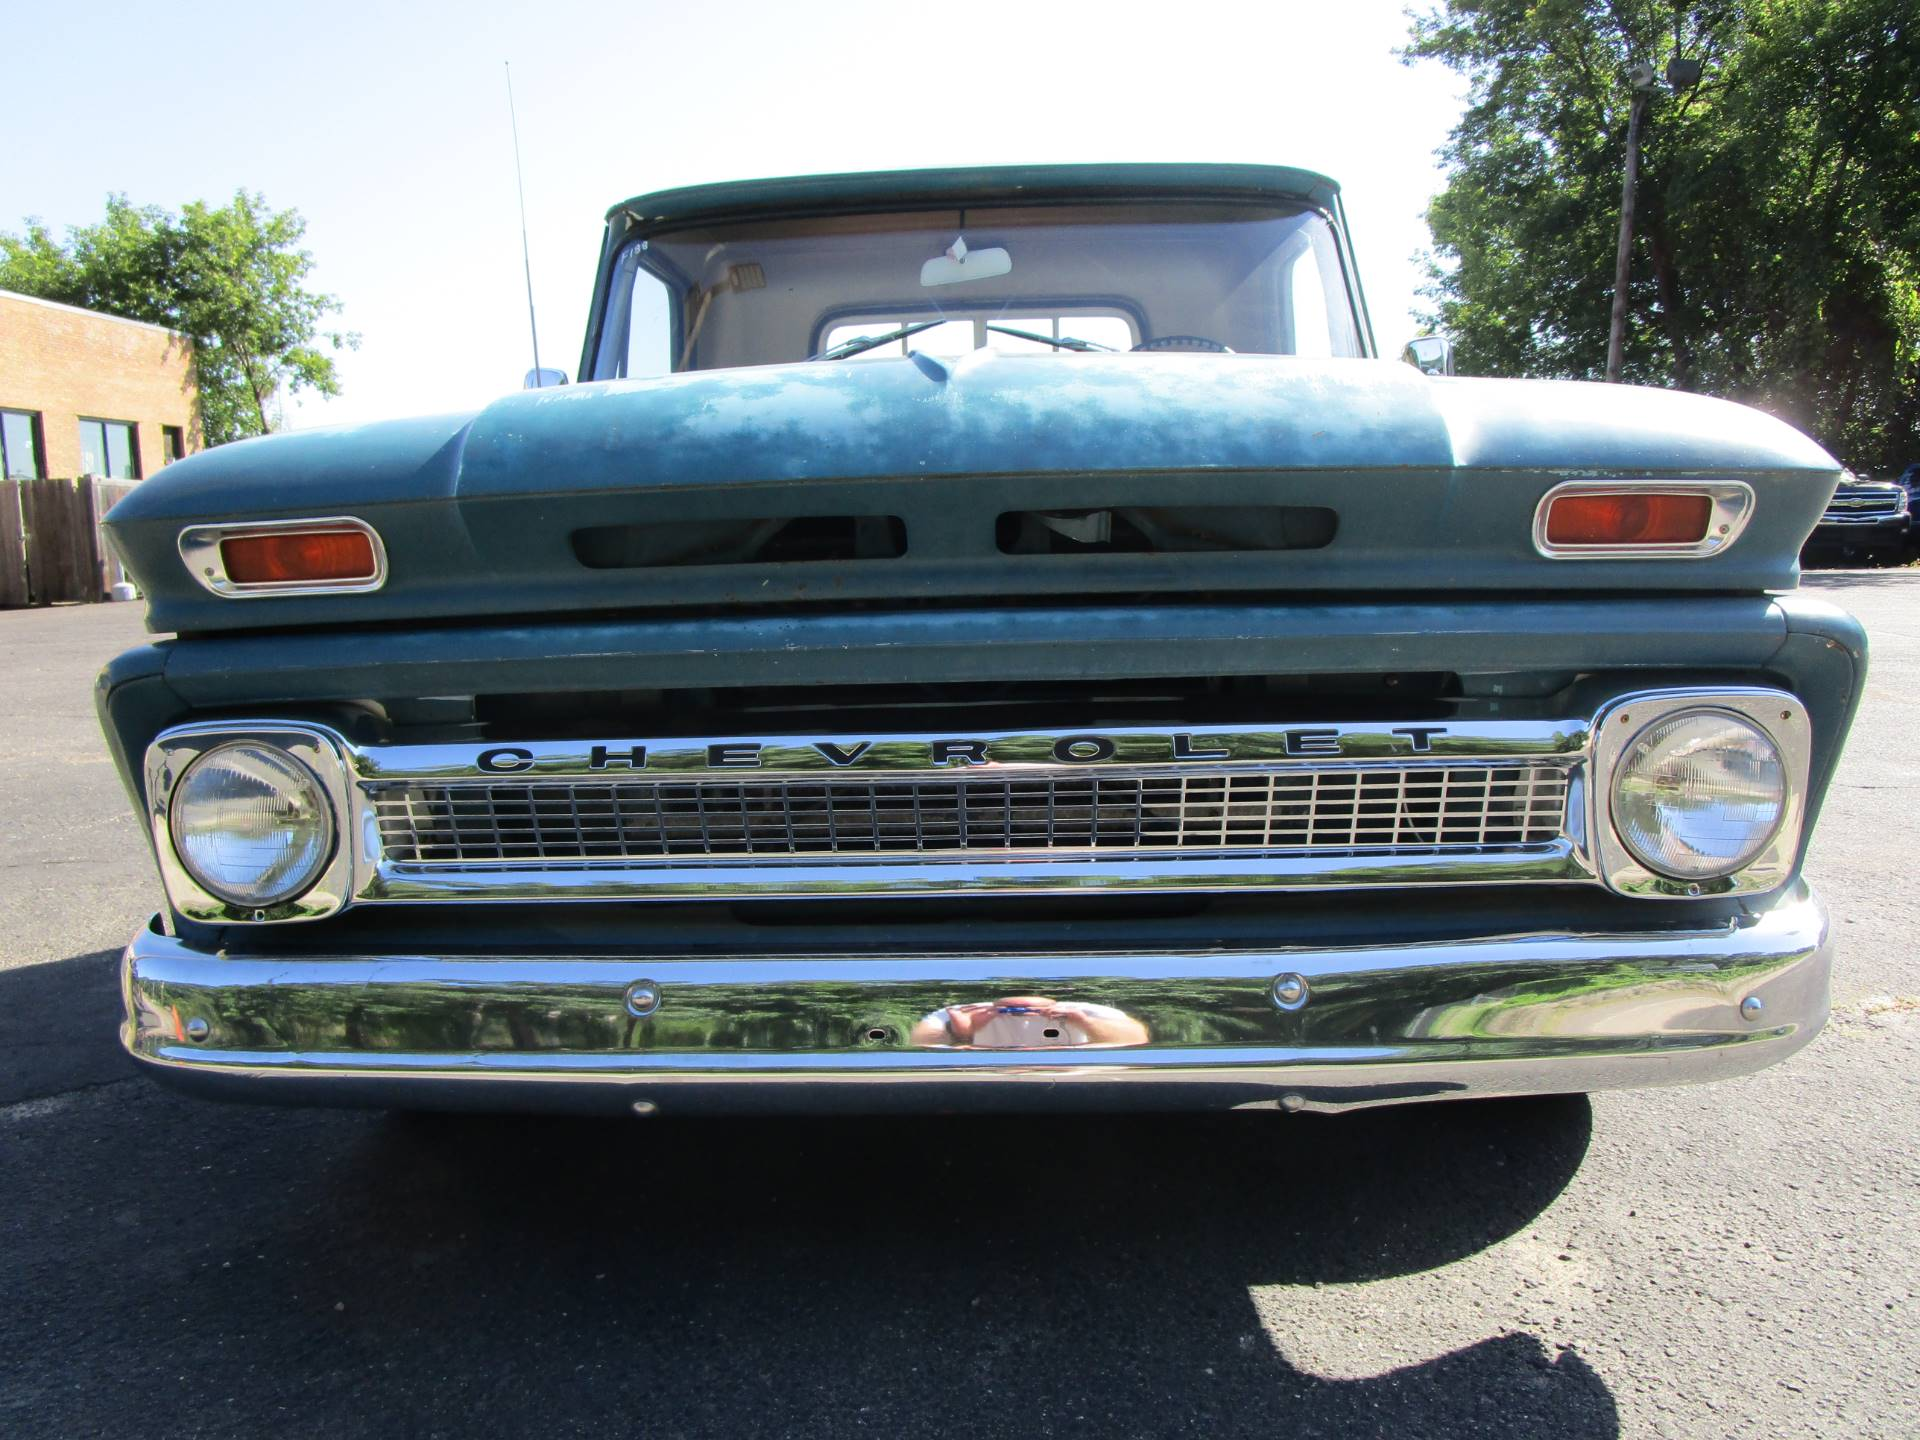 1964 Chevy C20 Specialty Vehicles South Saint Paul Minnesota Truck Grille In